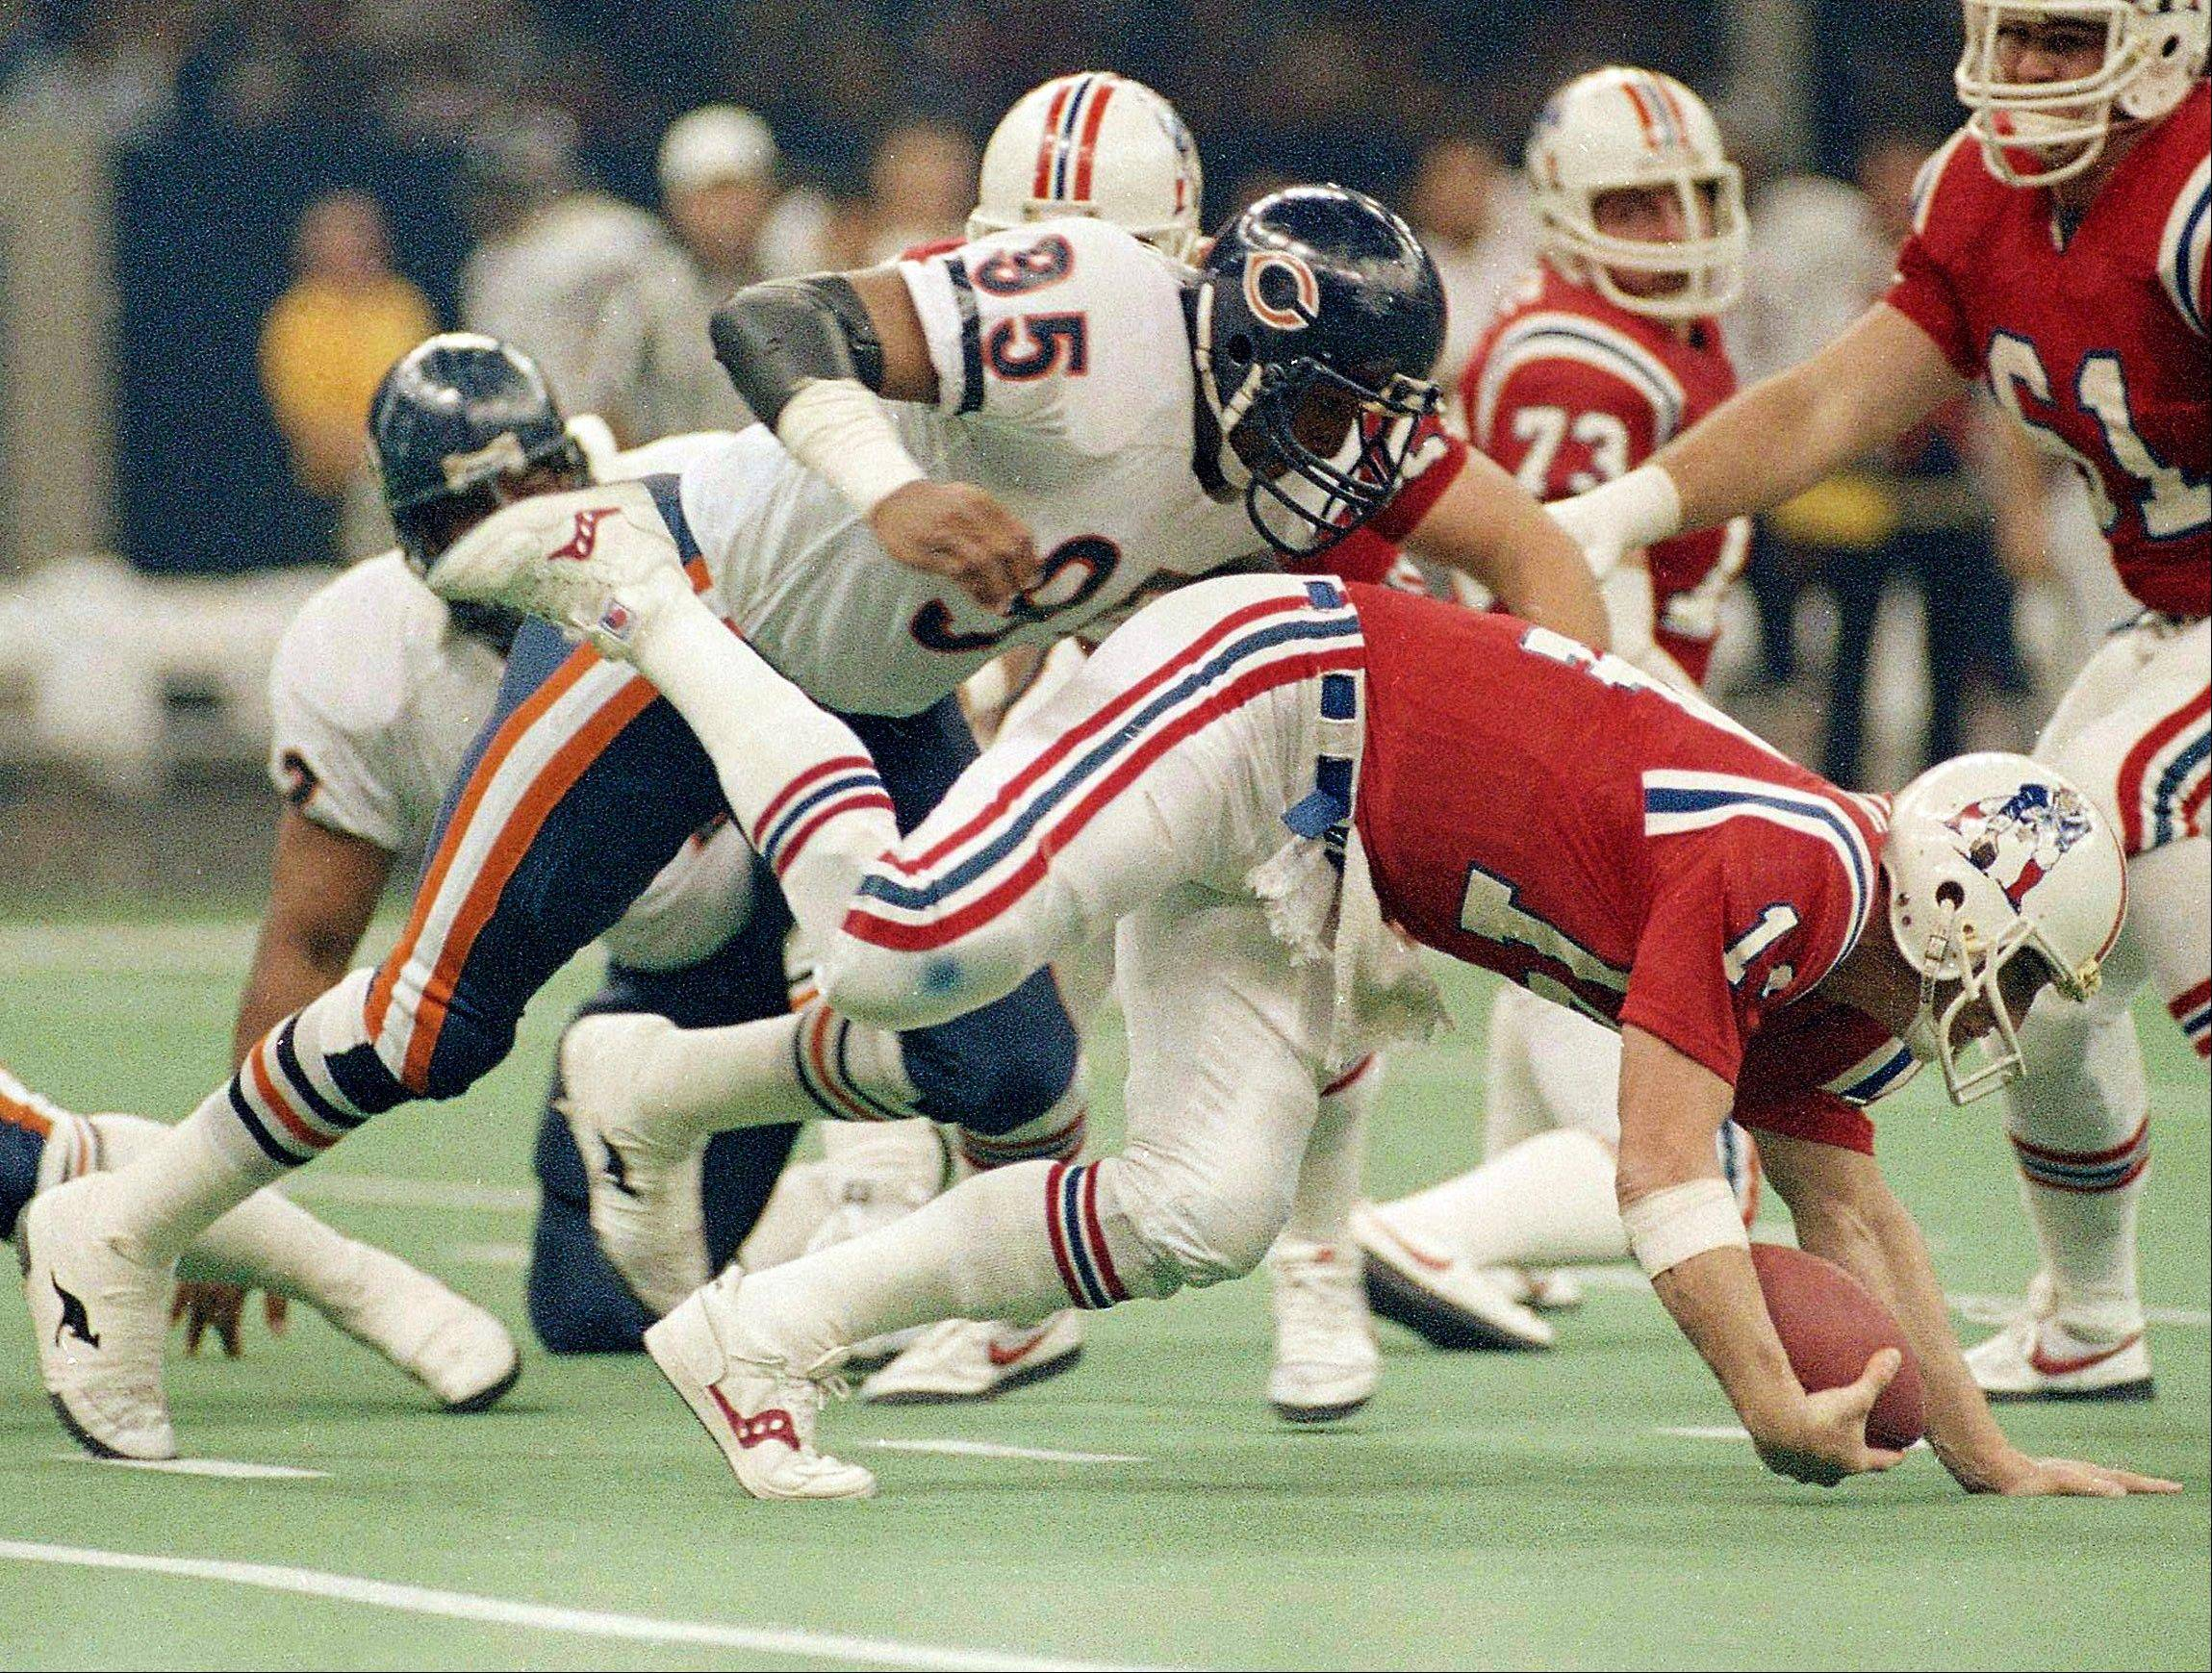 "Richard Dent, about to sack New England Patriots quarterback Steve Grogan during Super Bowl XX, earned the nickname ""Sackman"" during his NFL career. His book talks about earning respect after coming into the league as an unheralded college player."